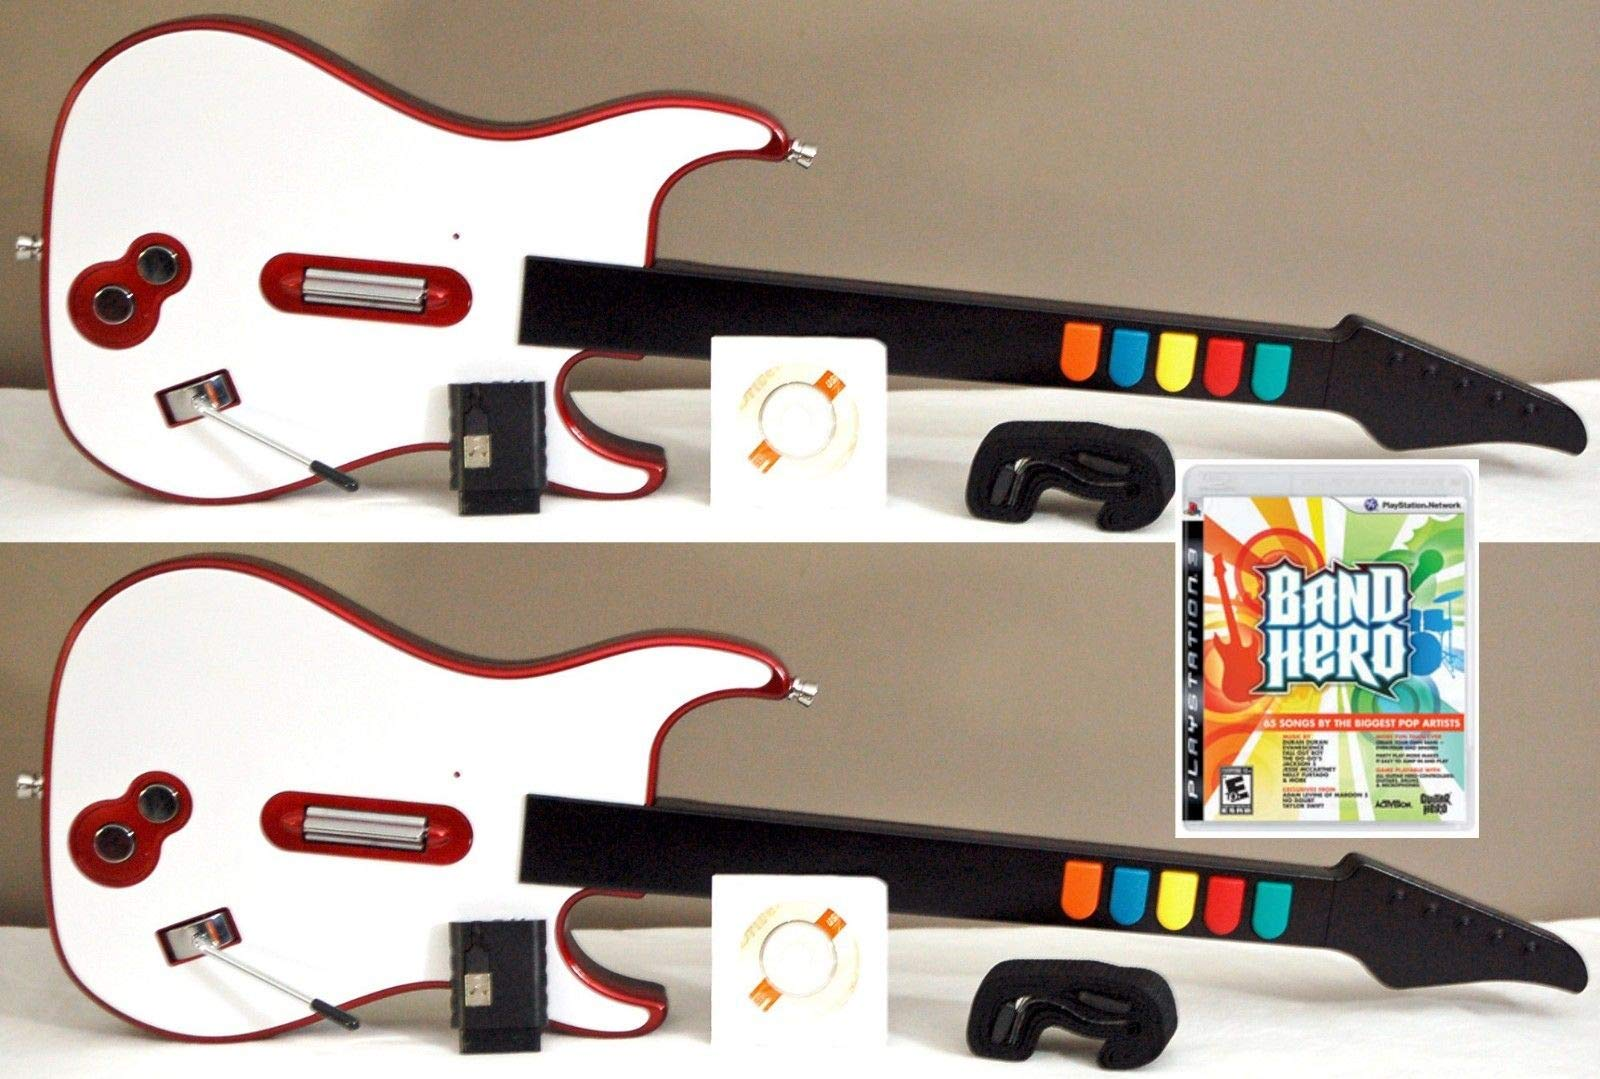 2 NEW WIRELESS Double Guitar Hero Game Controllers + NEW PS3 Band Hero Video Game Rock Band Music Bundle by Loot Hive (Image #1)